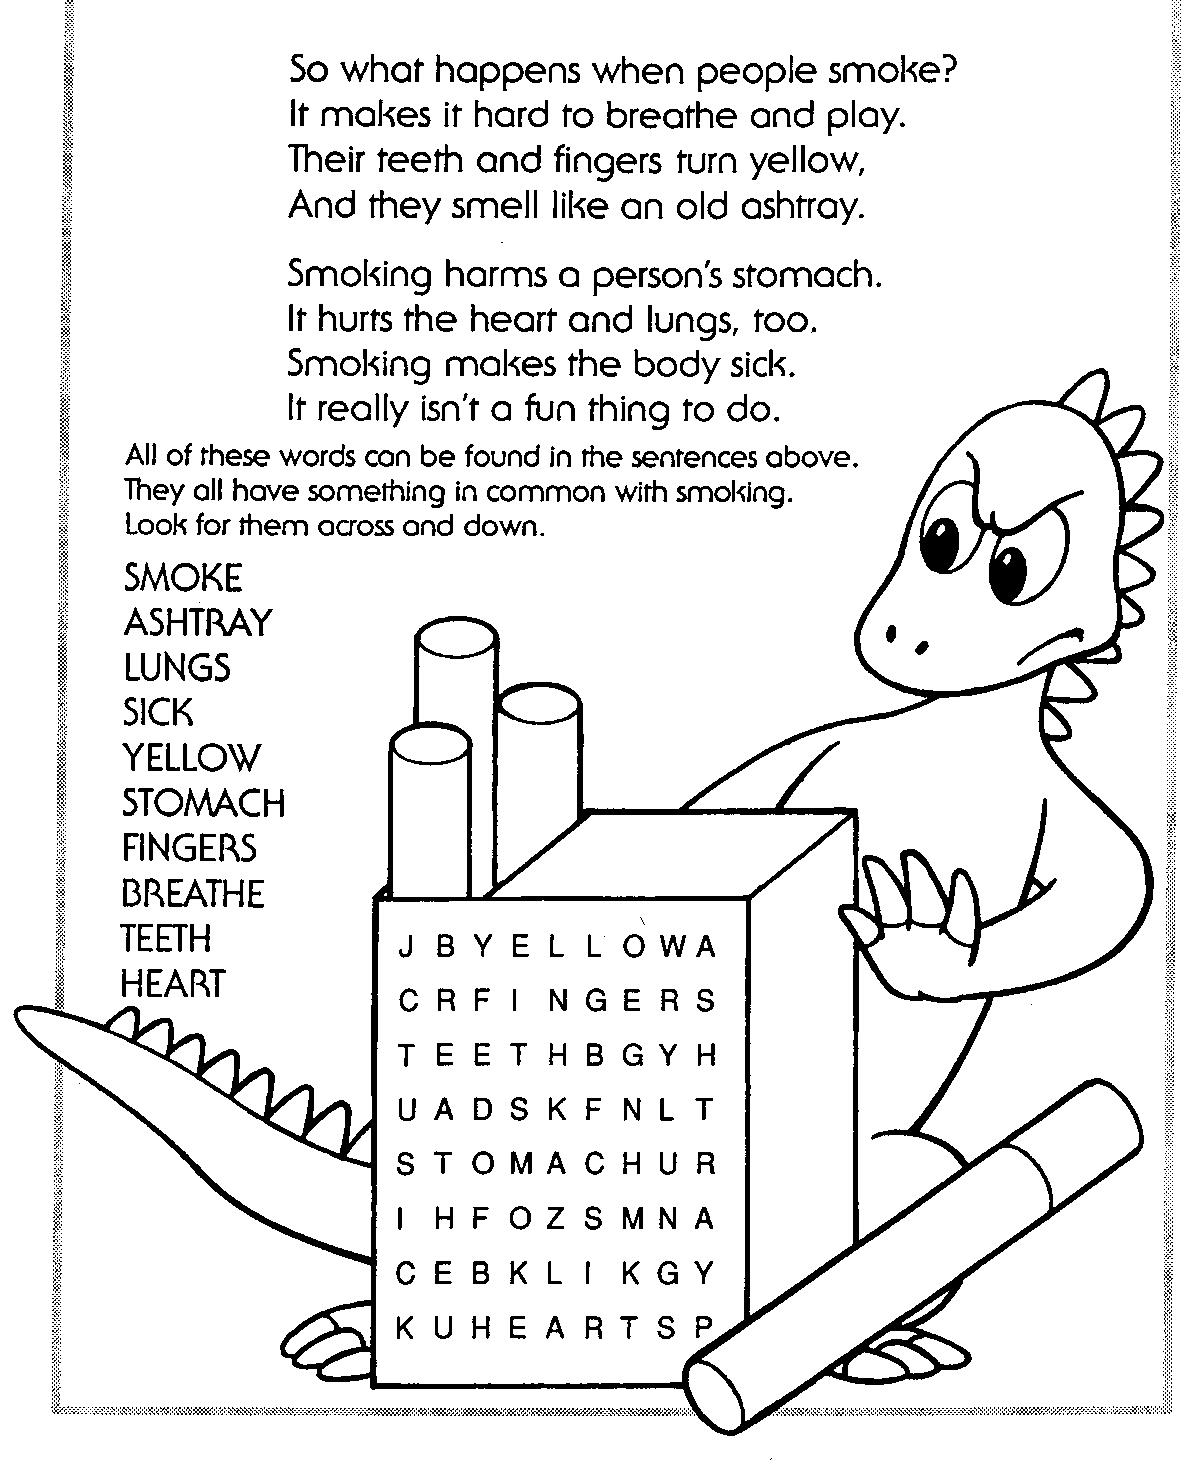 Say no to drugs free coloring pages ~ counselorconnection / Red Ribbon Week